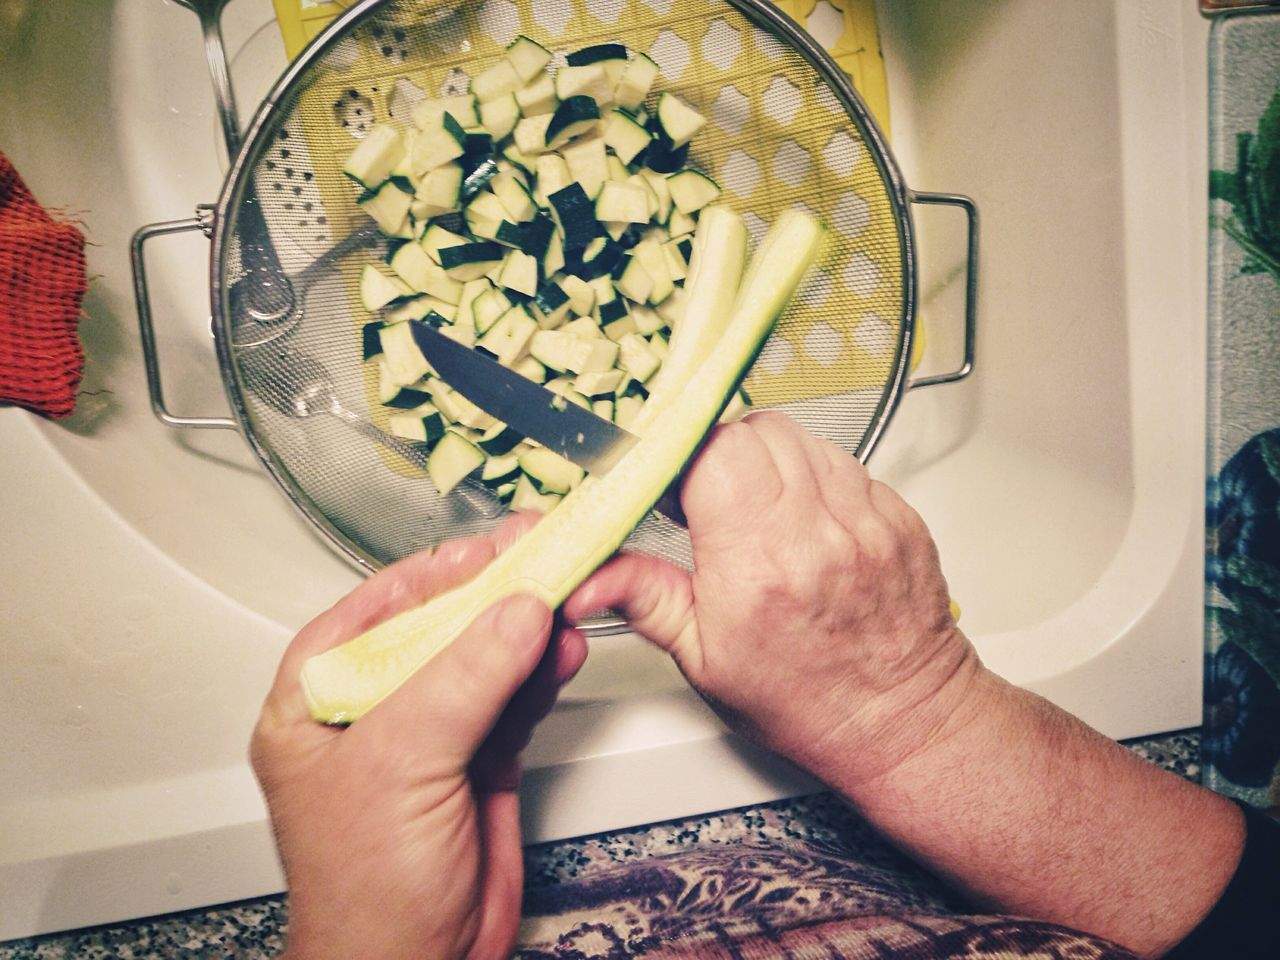 Cropped Image Of Person Slicing Cucumber In Container